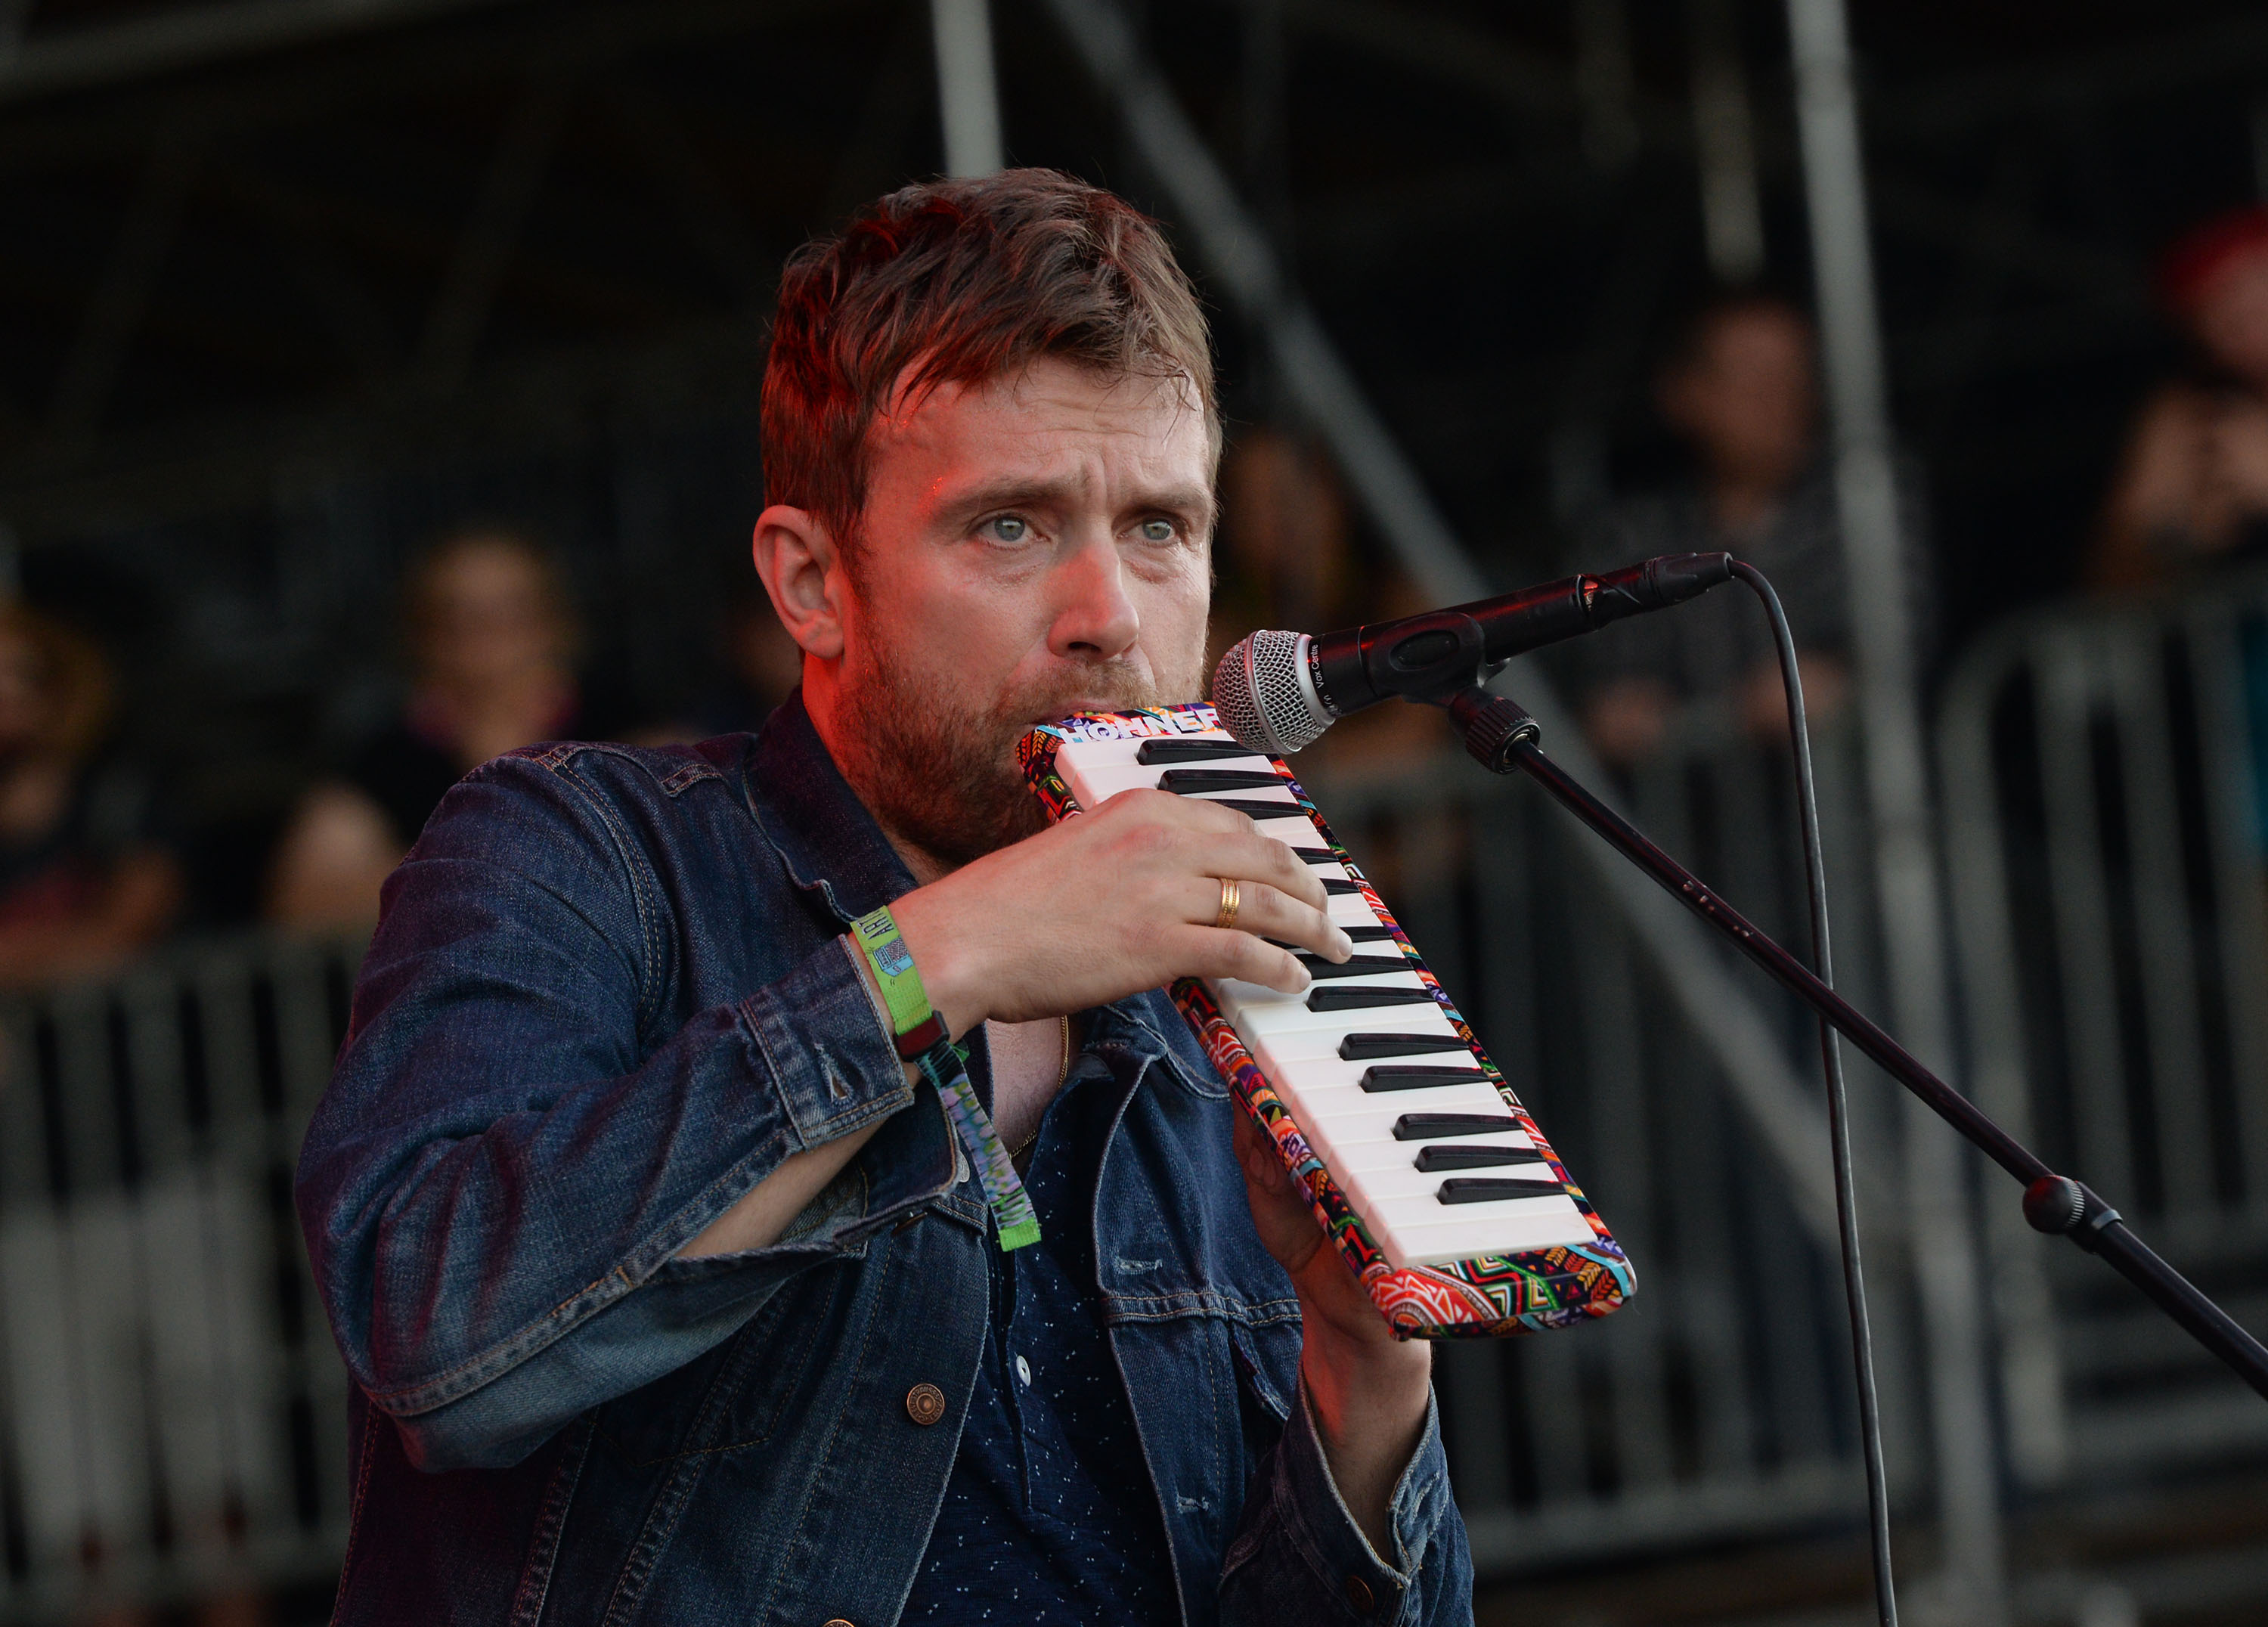 MANCHESTER, TN - JUNE 14:  Damon Albarn of Blur performs during the 2014 Bonnaroo Music & Arts Festival on June 14, 2014